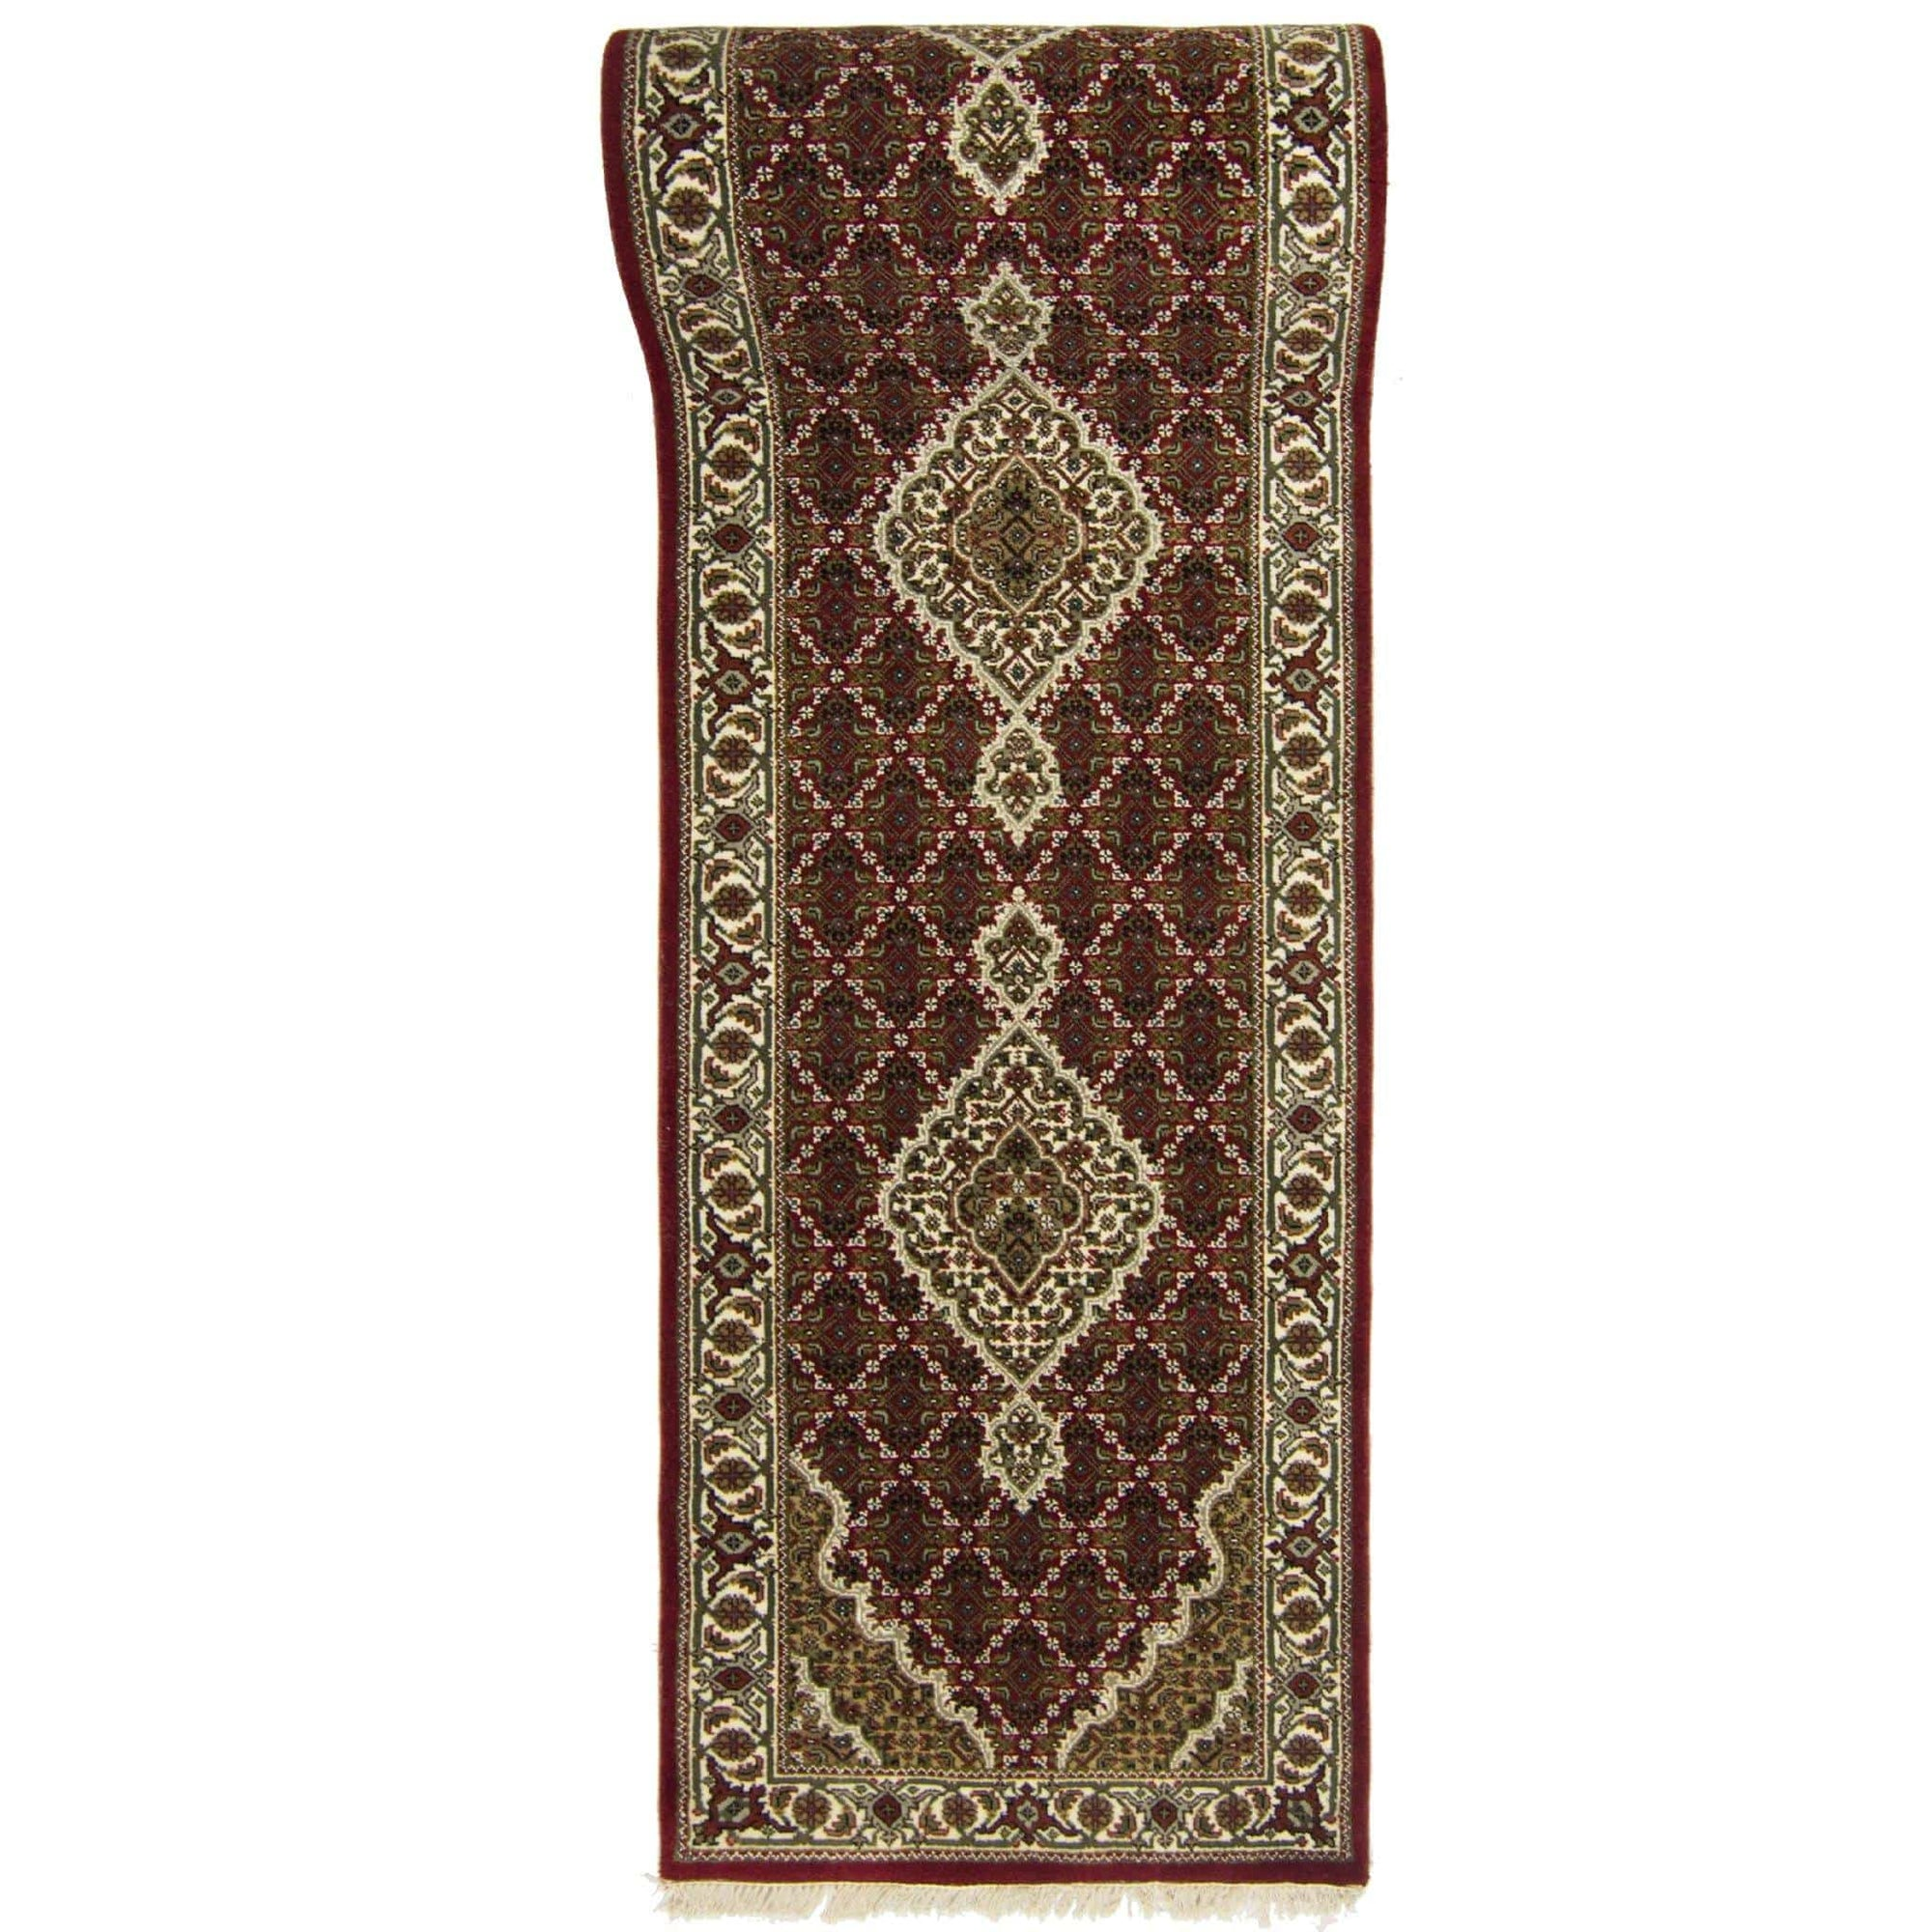 Super Fine Hand-knotted Wool and Silk Tabriz - Mahi Runner 81 cm x 305 cm Persian-Rug | House-of-Haghi | NewMarket | Auckland | NZ | Handmade Persian Rugs | Hand Knotted Persian Rugs